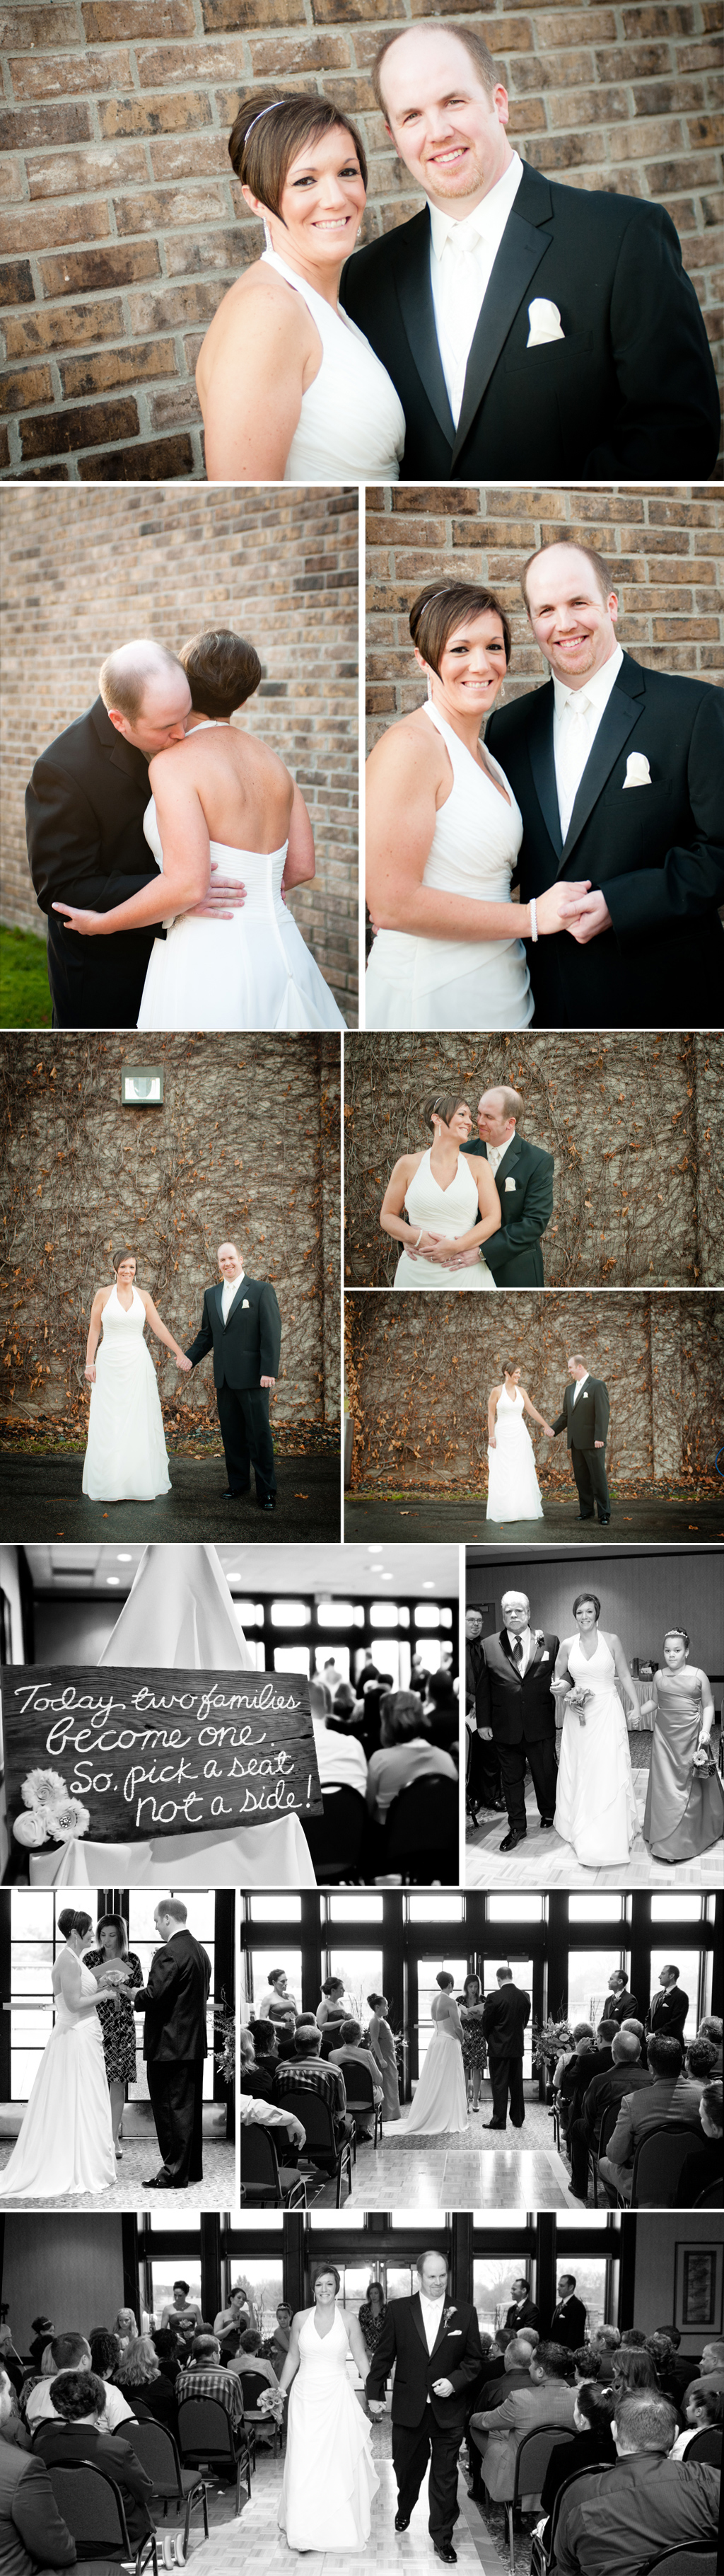 Evans-Wedding_KellyKPhoto_Seq1